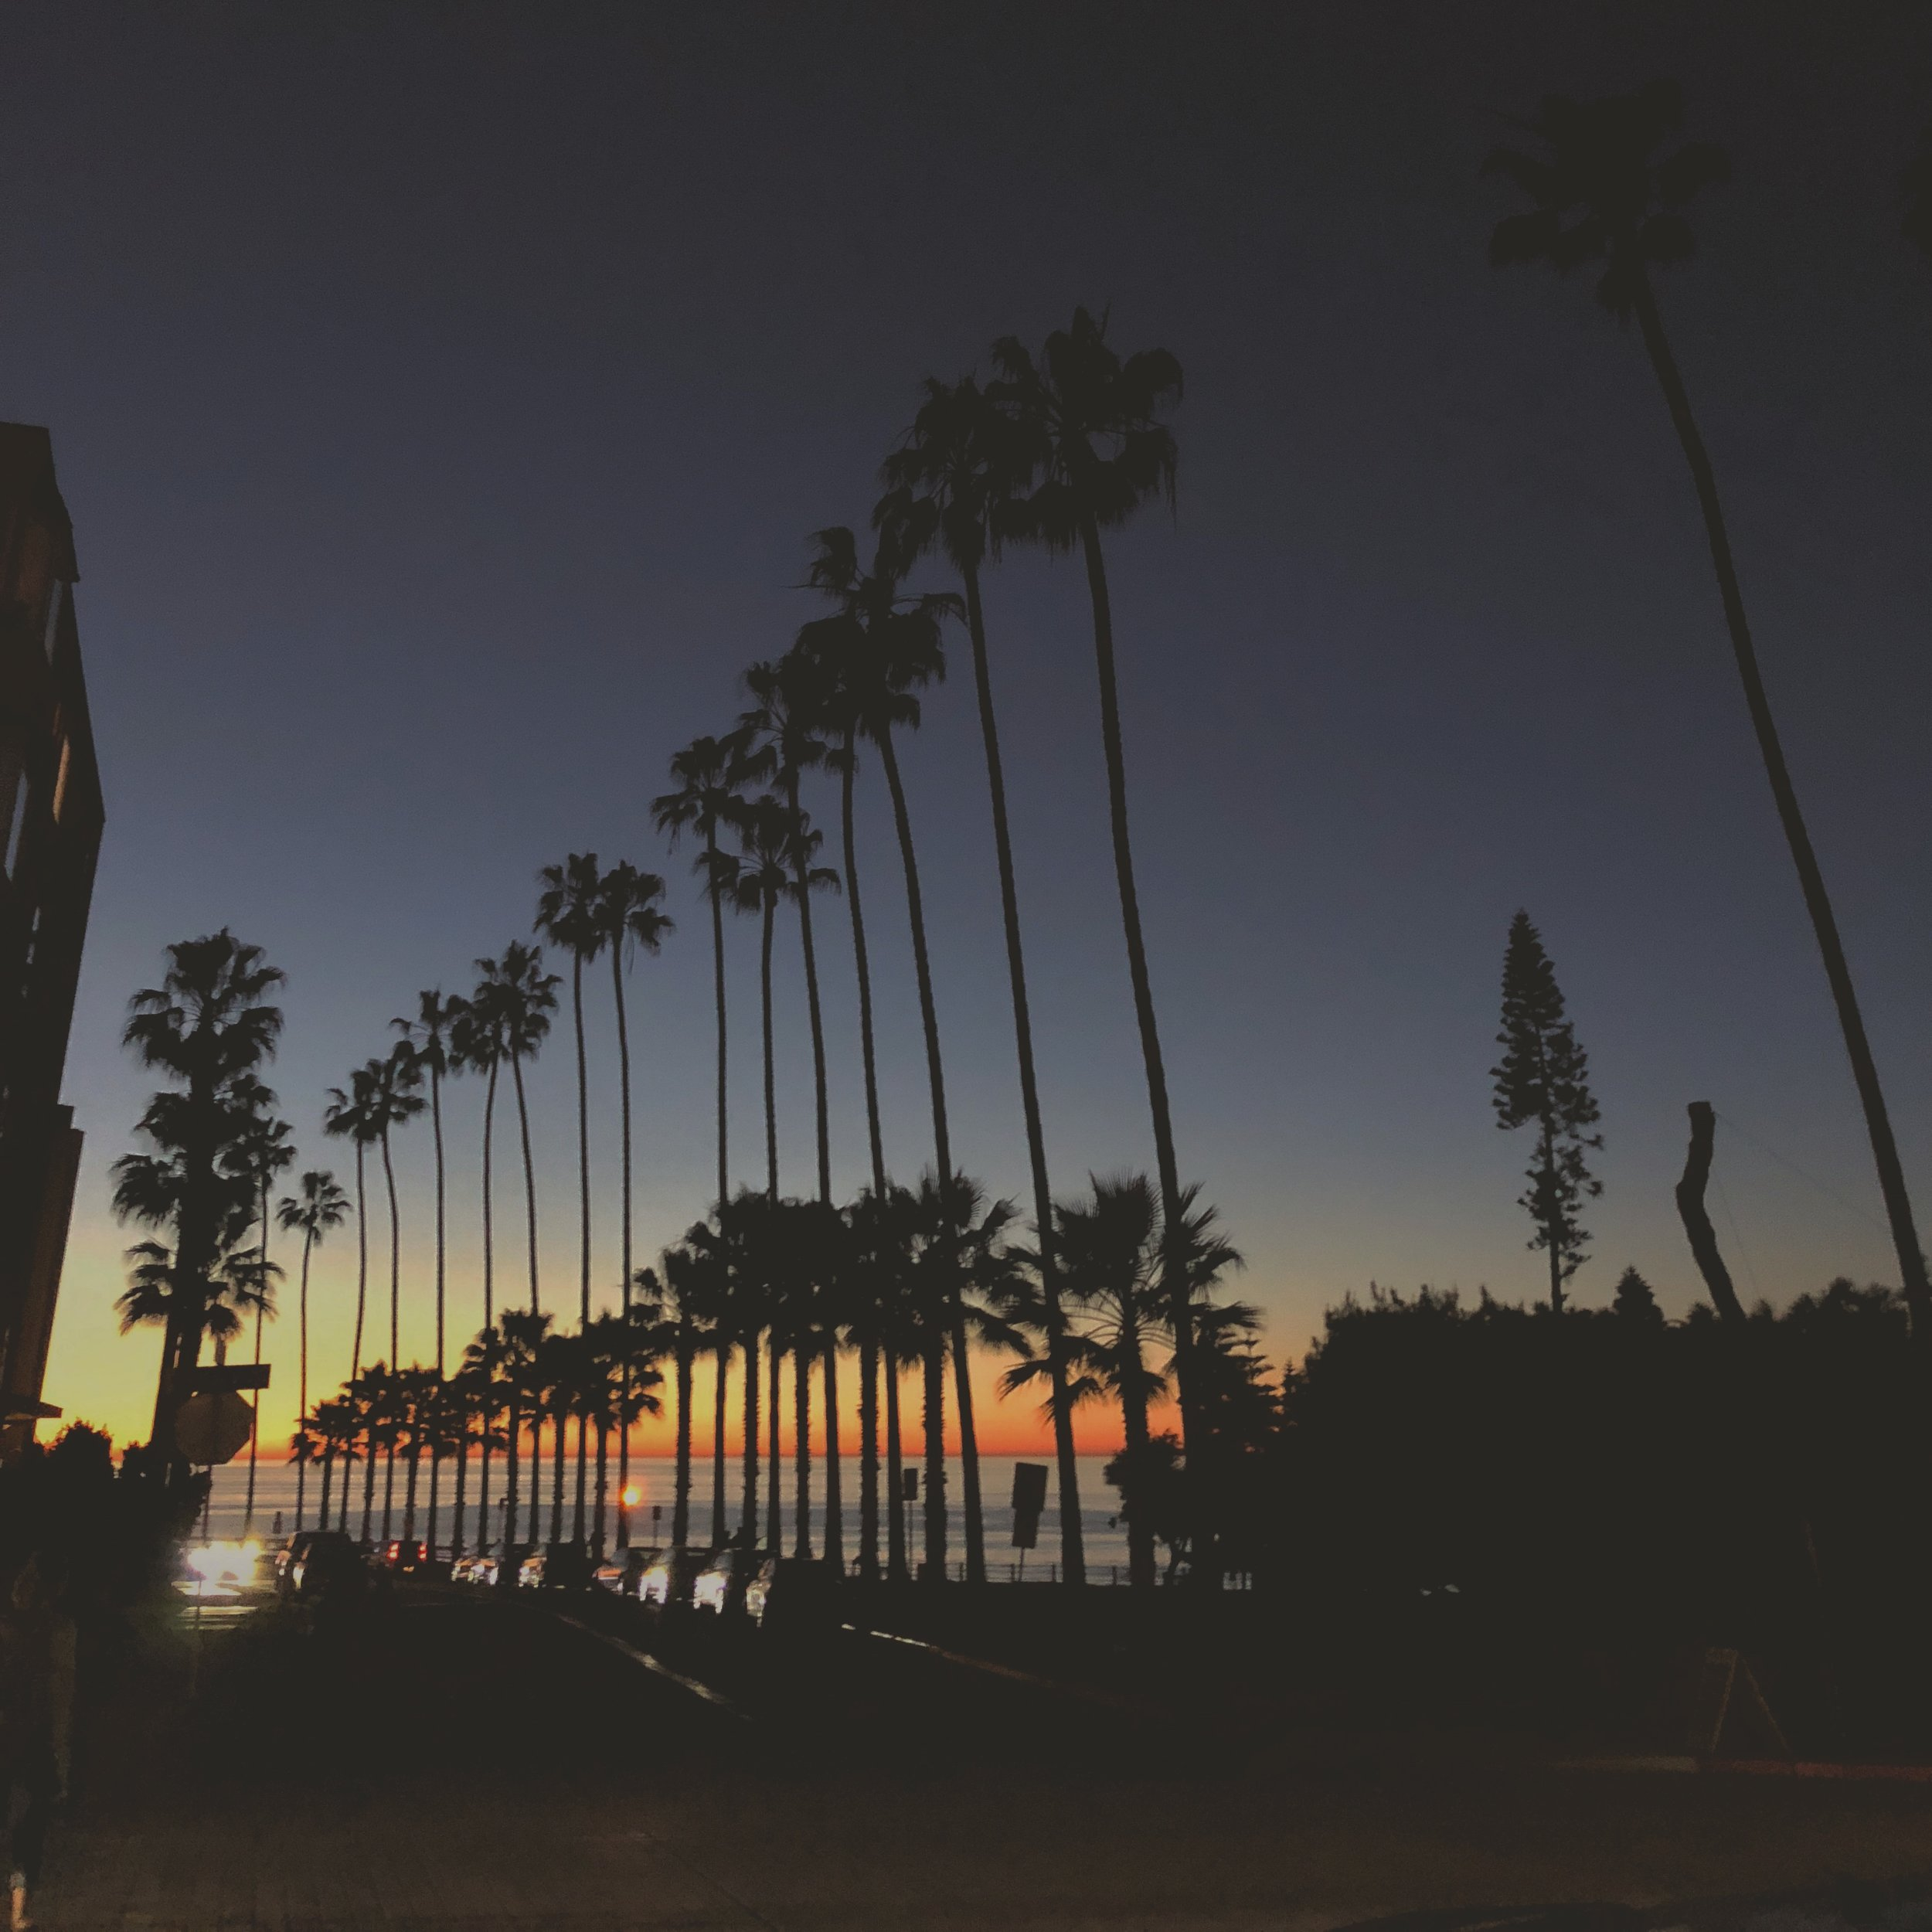 grandtheftauto419andahalf   counting the days until I'm back on the west caost  .  .   #venice #palmtrees #yuccafest #sunset #california